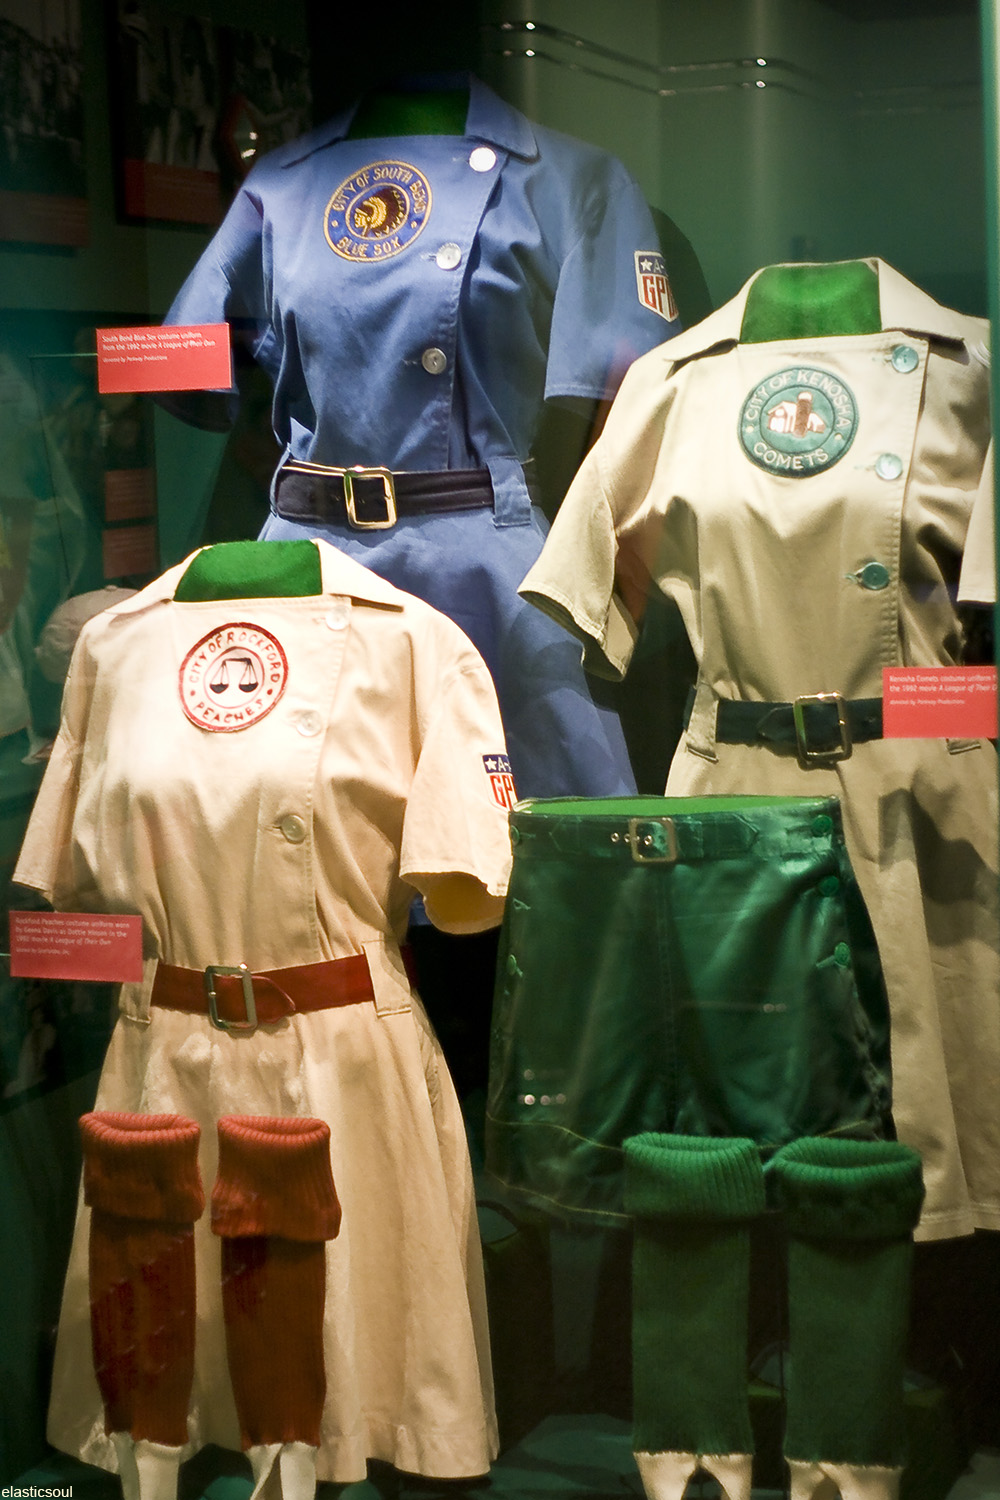 uniforms of the Rockford Peaches, Kenosha Comets, and South Bend Blue Sox